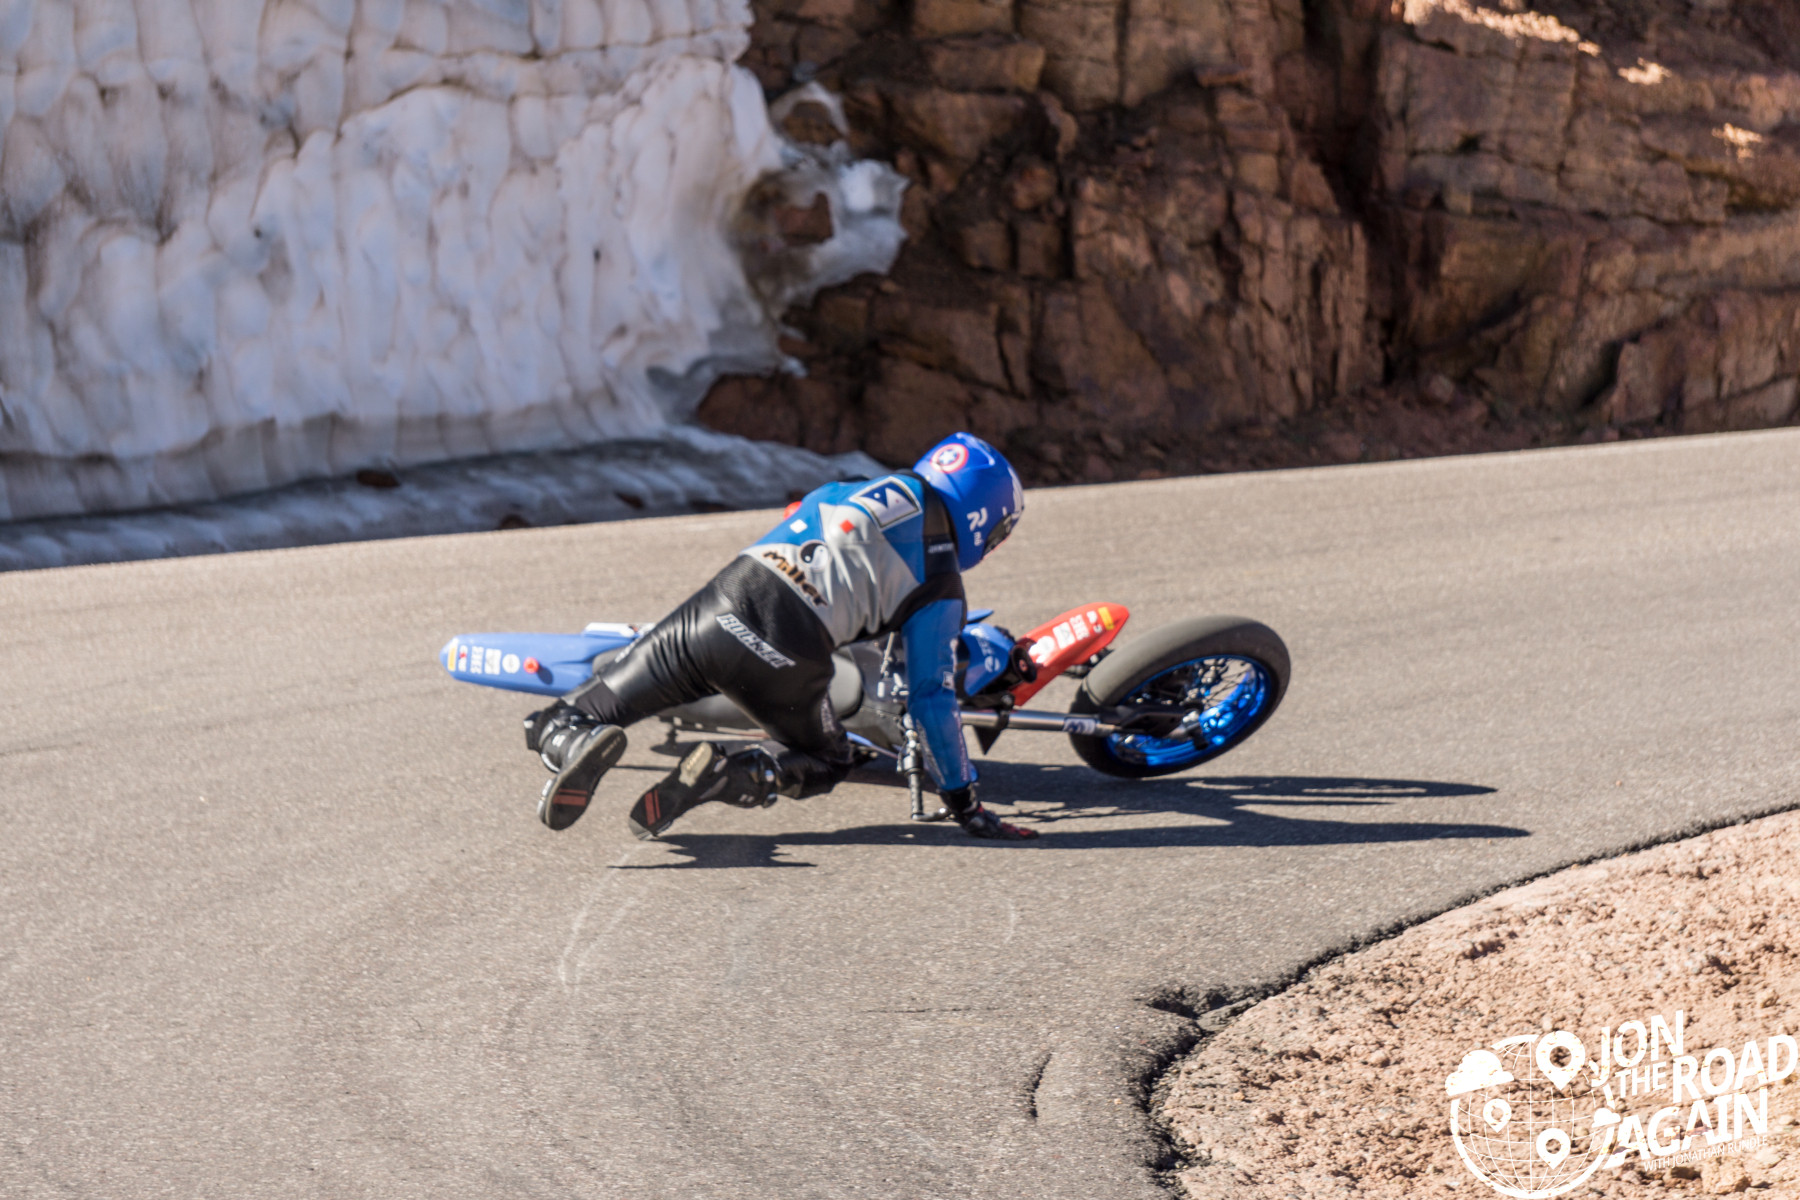 Pikes Peak Hill Climb Motorcycle Crash